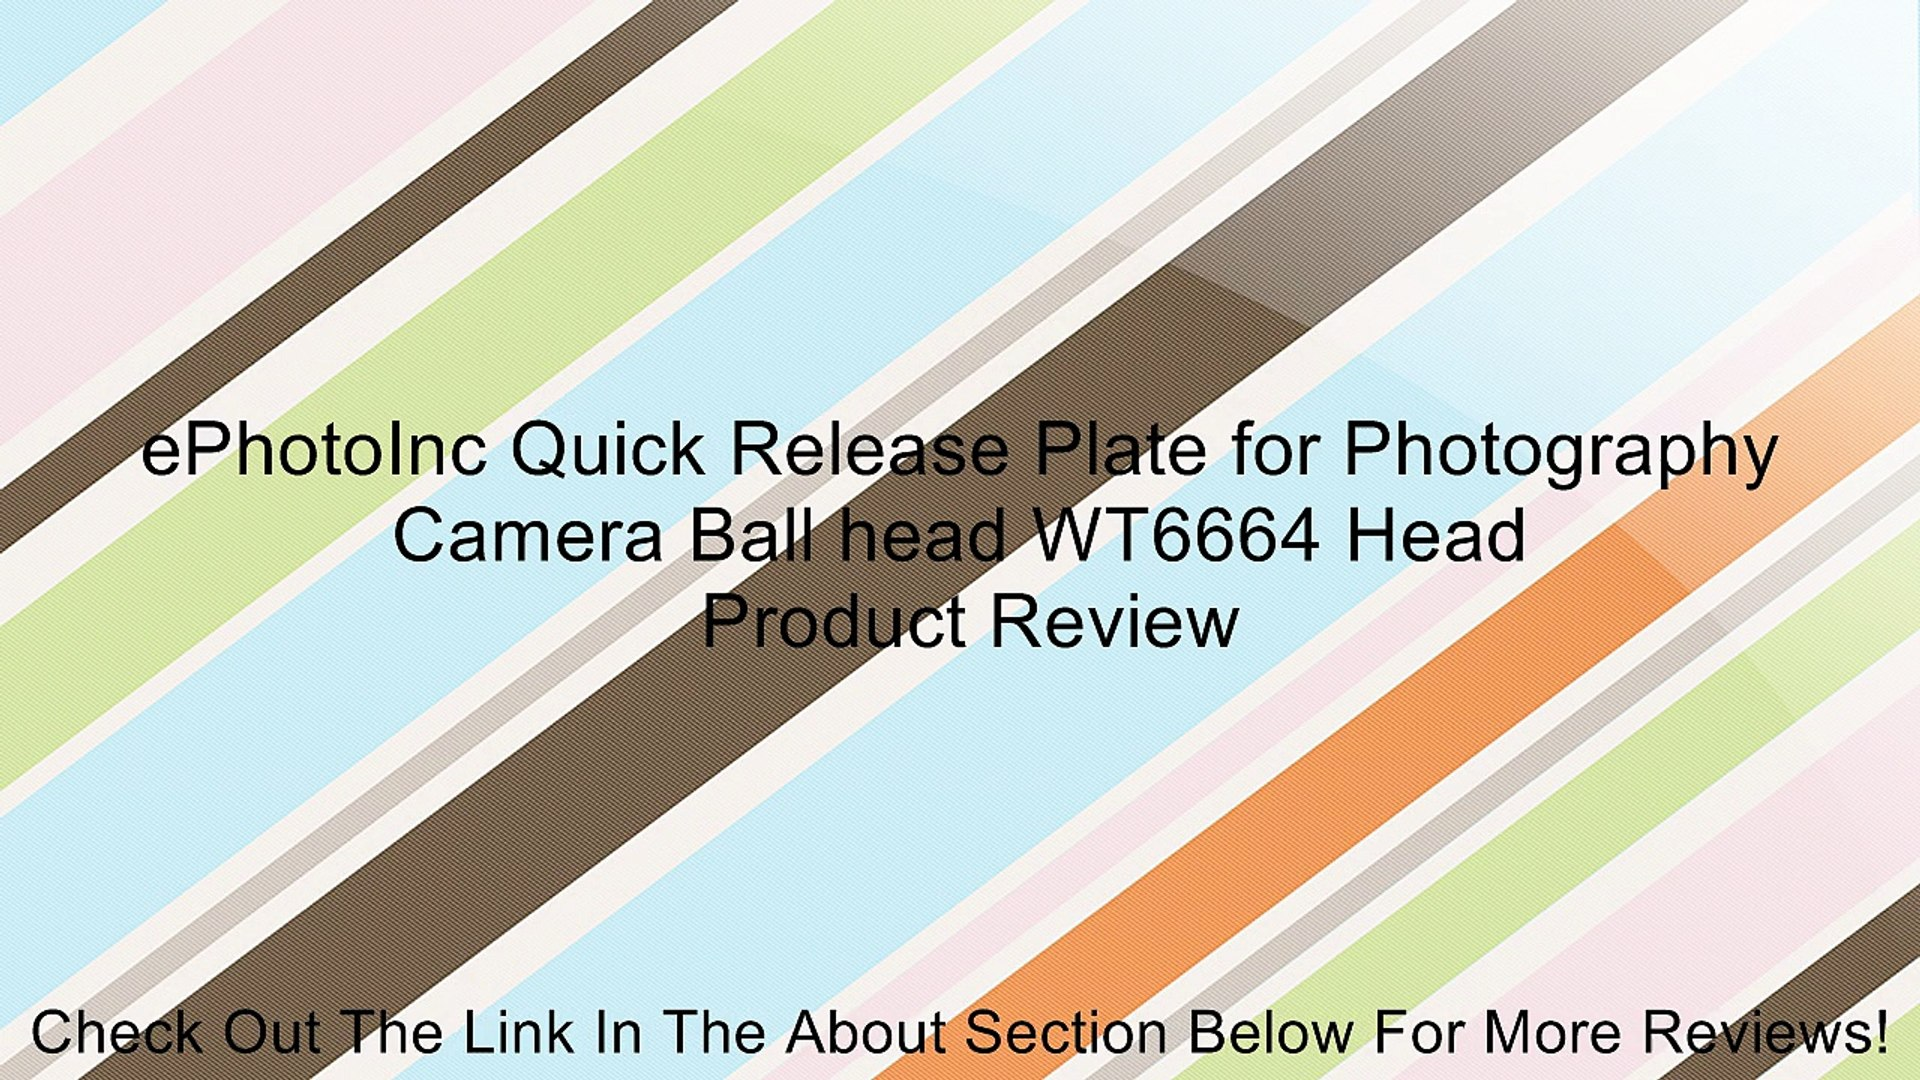 ePhotoInc Quick Release Plate for Photography Camera Ball head WT6664 Head